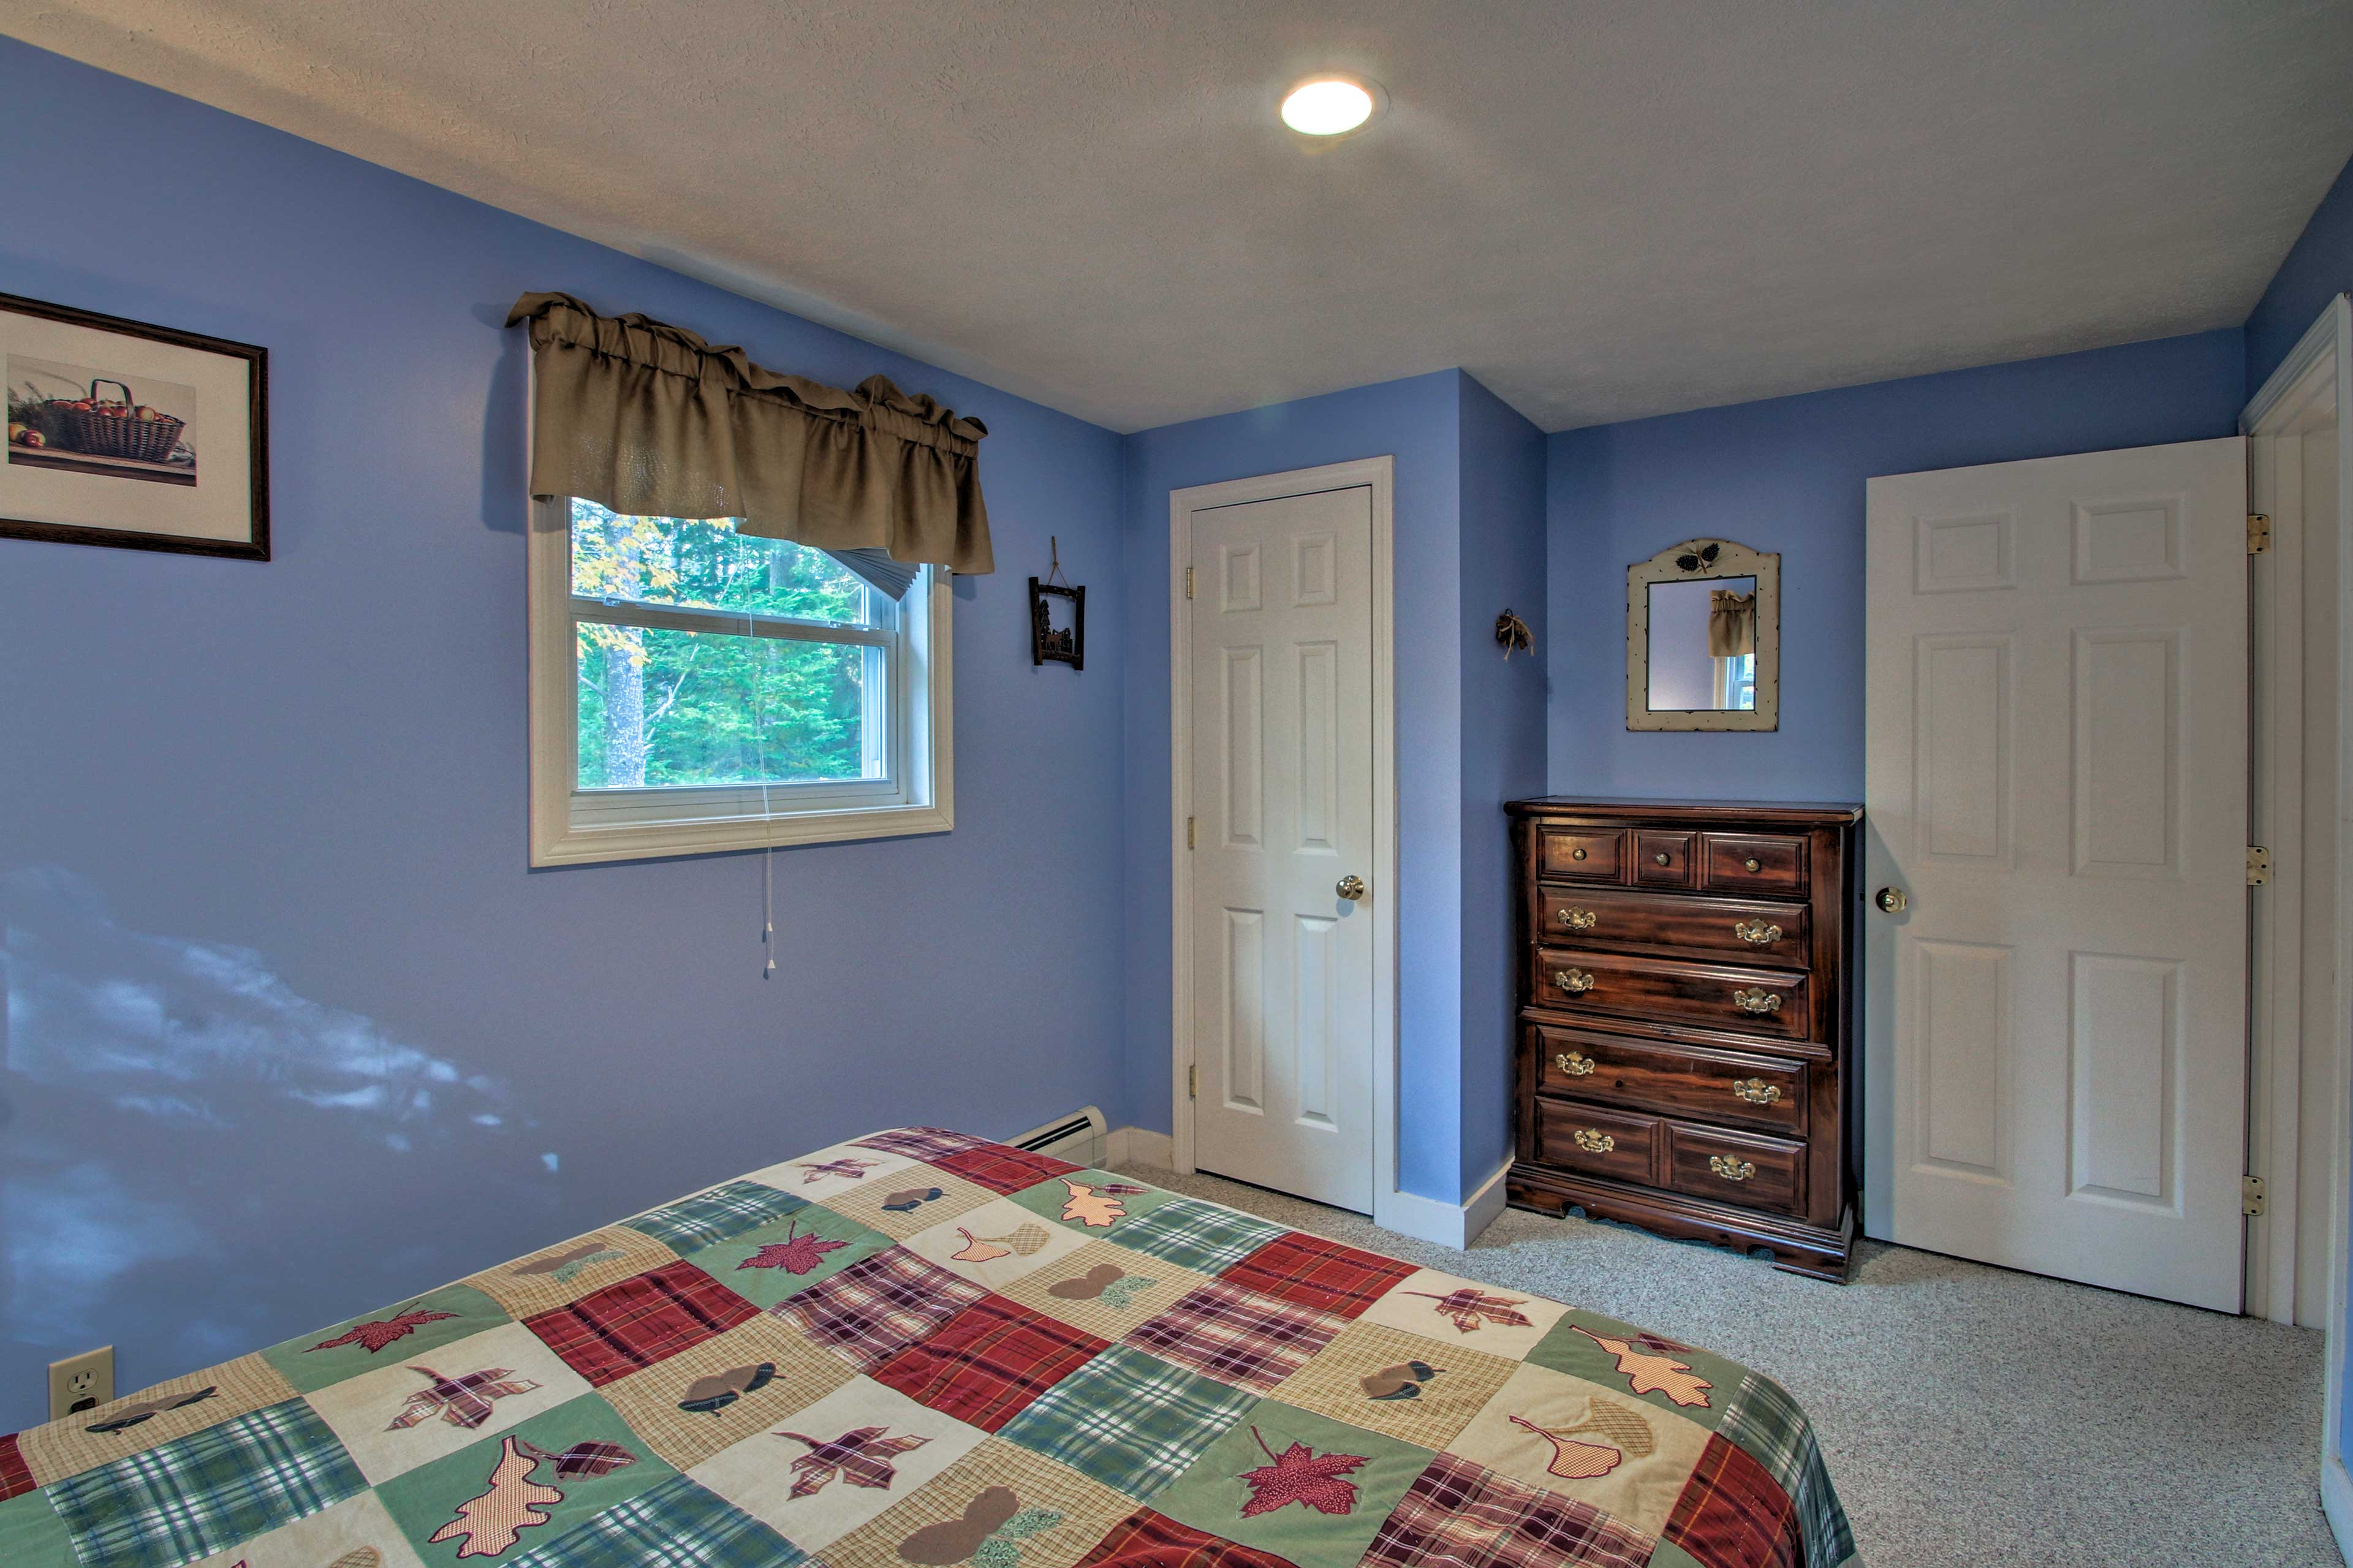 This bedroom also features ample storage space.